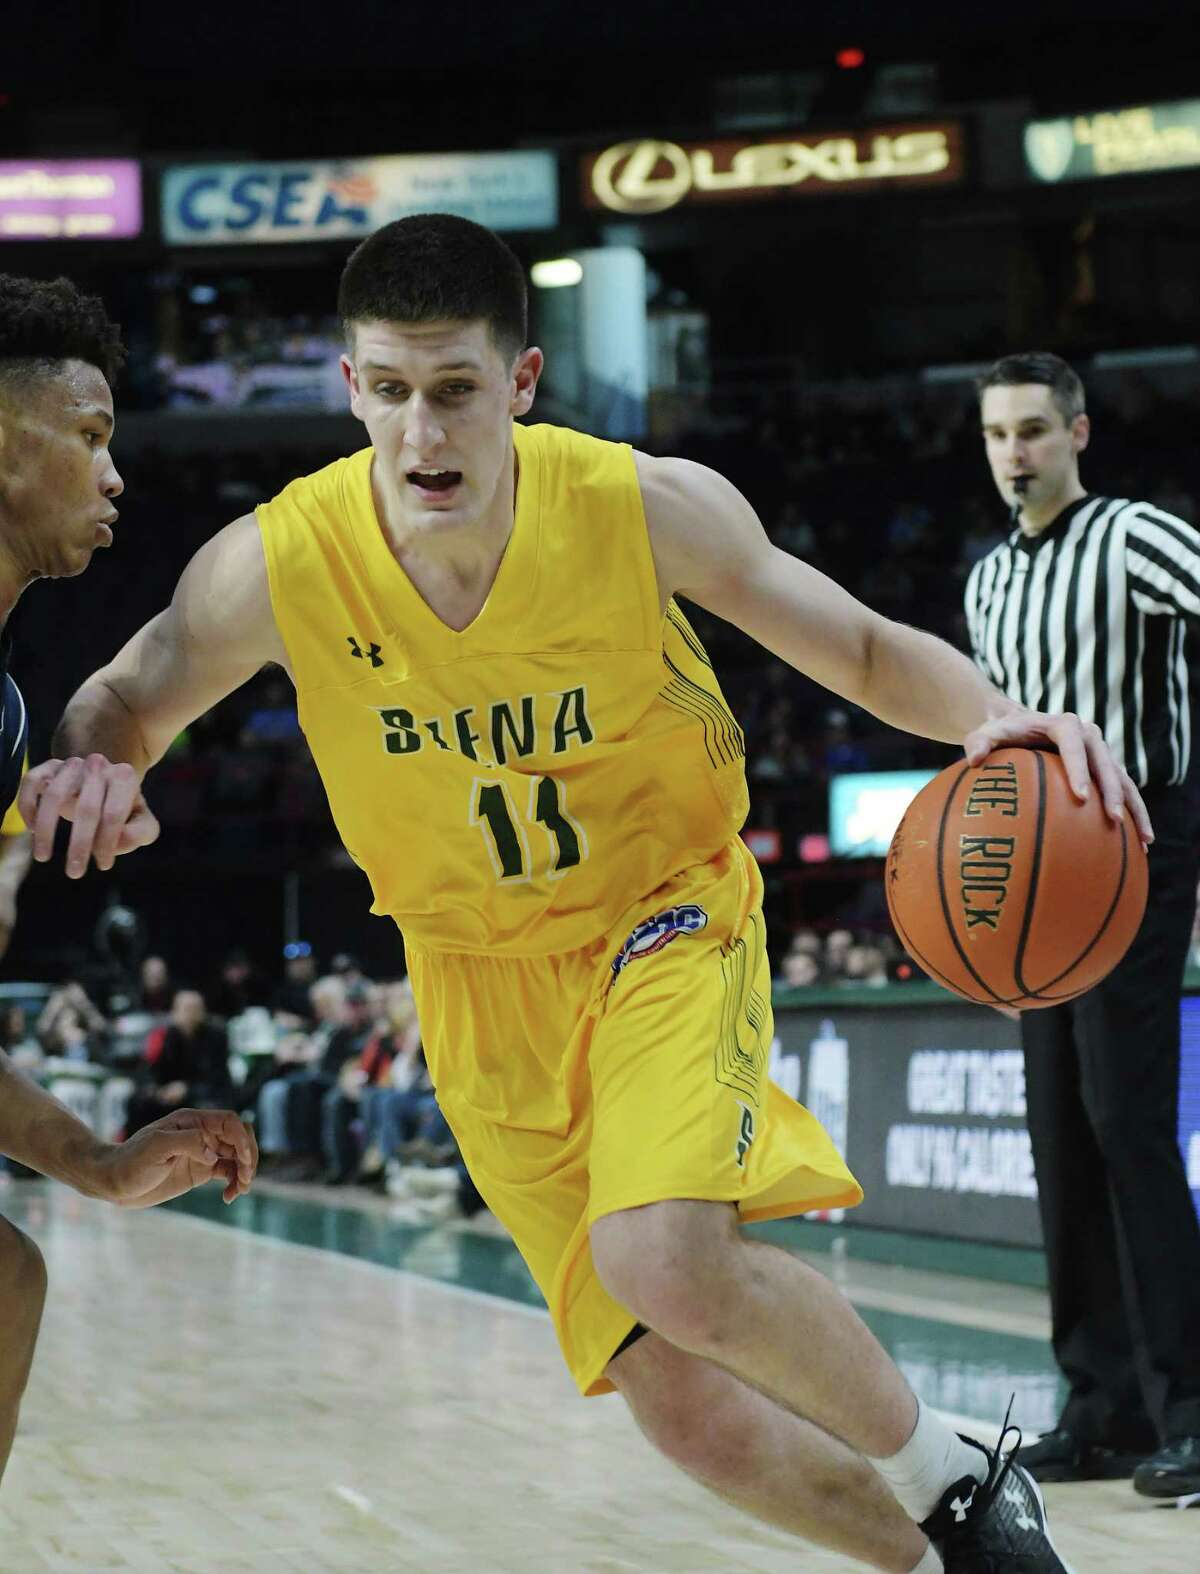 Thomas Huerter, Jr. of Siena tries to get around a Monmouth player during their game on Sunday, Feb. 18, 2018, in Albany, N.Y. (Paul Buckowski/Times Union)